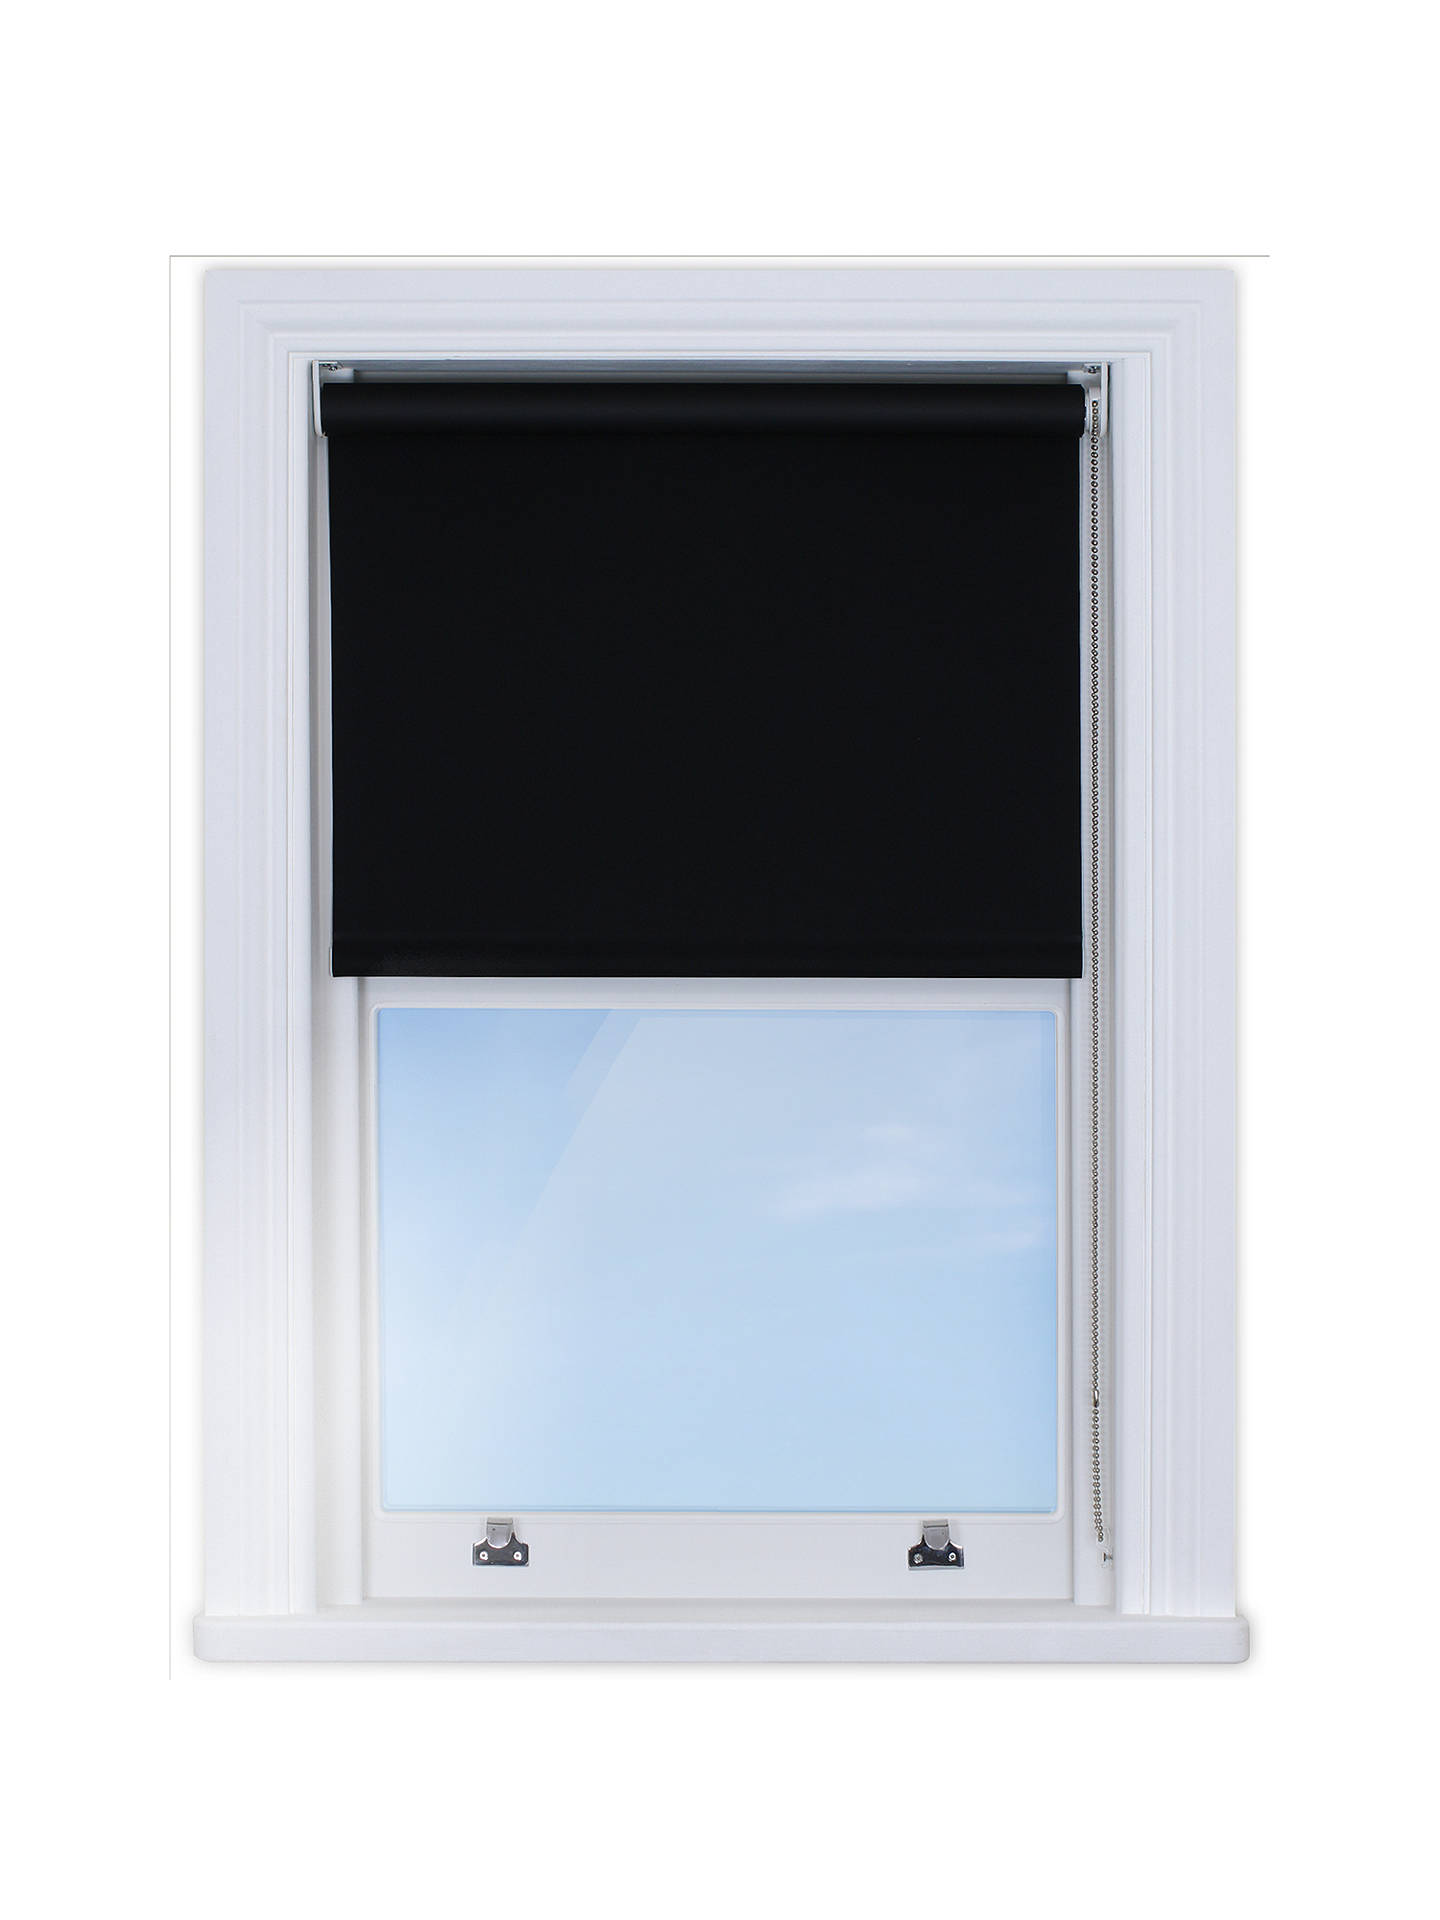 Buy Bloc Made to Measure Fabric Changer Blackout Roller Blind, Black Ink, Max W70 x Max Drop 100cm Online at johnlewis.com